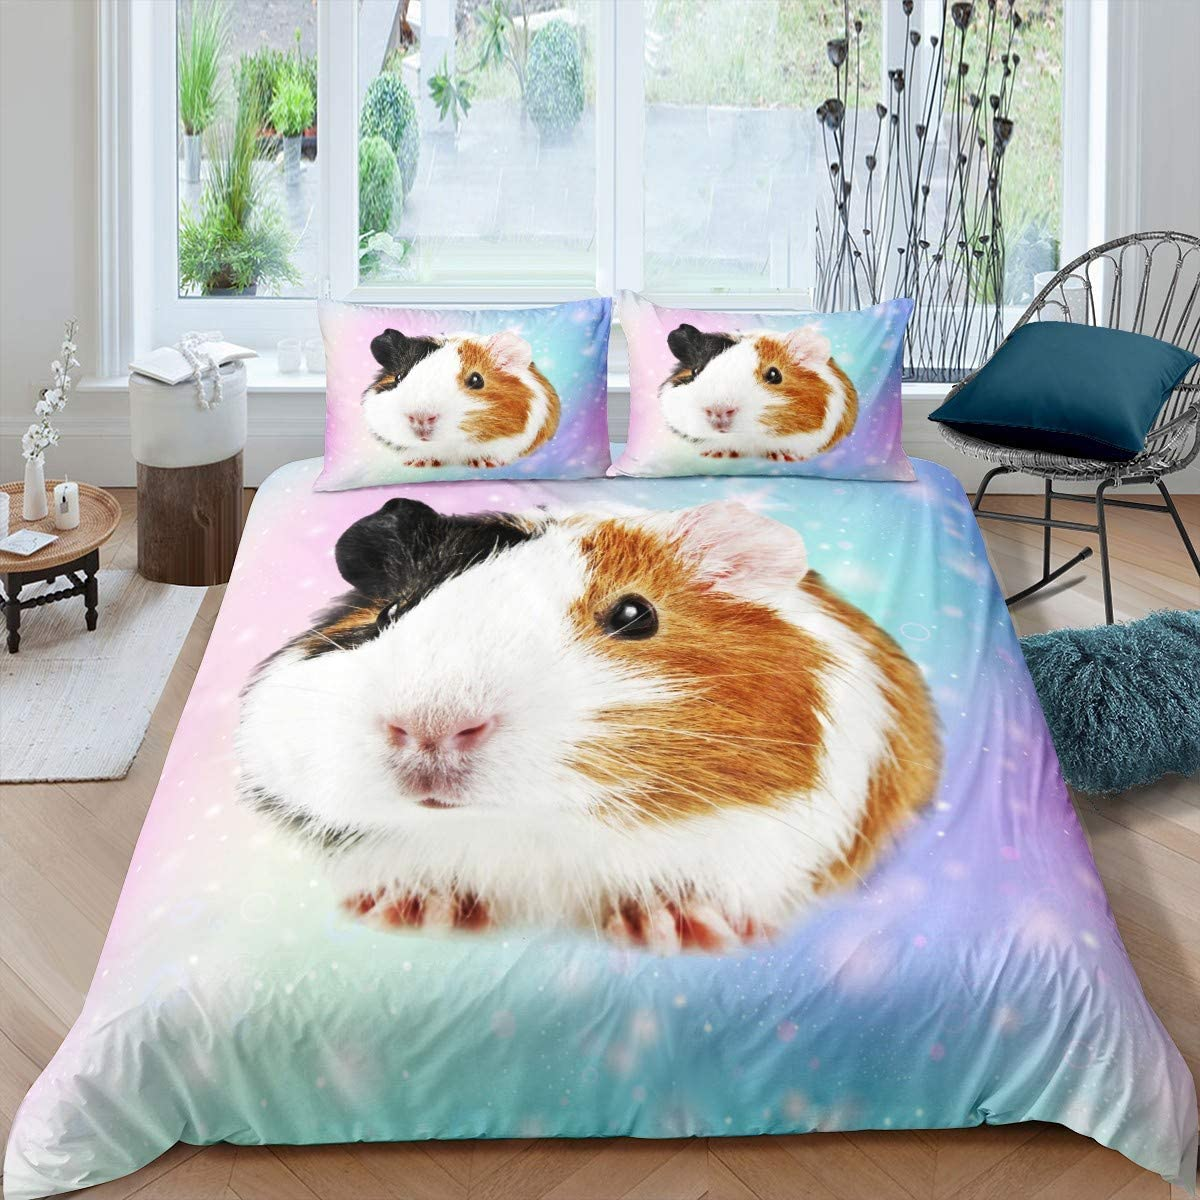 Guinea Now free shipping Pig Louisville-Jefferson County Mall Bedding Set for Girls Cavy Pattern Cute Boys Children